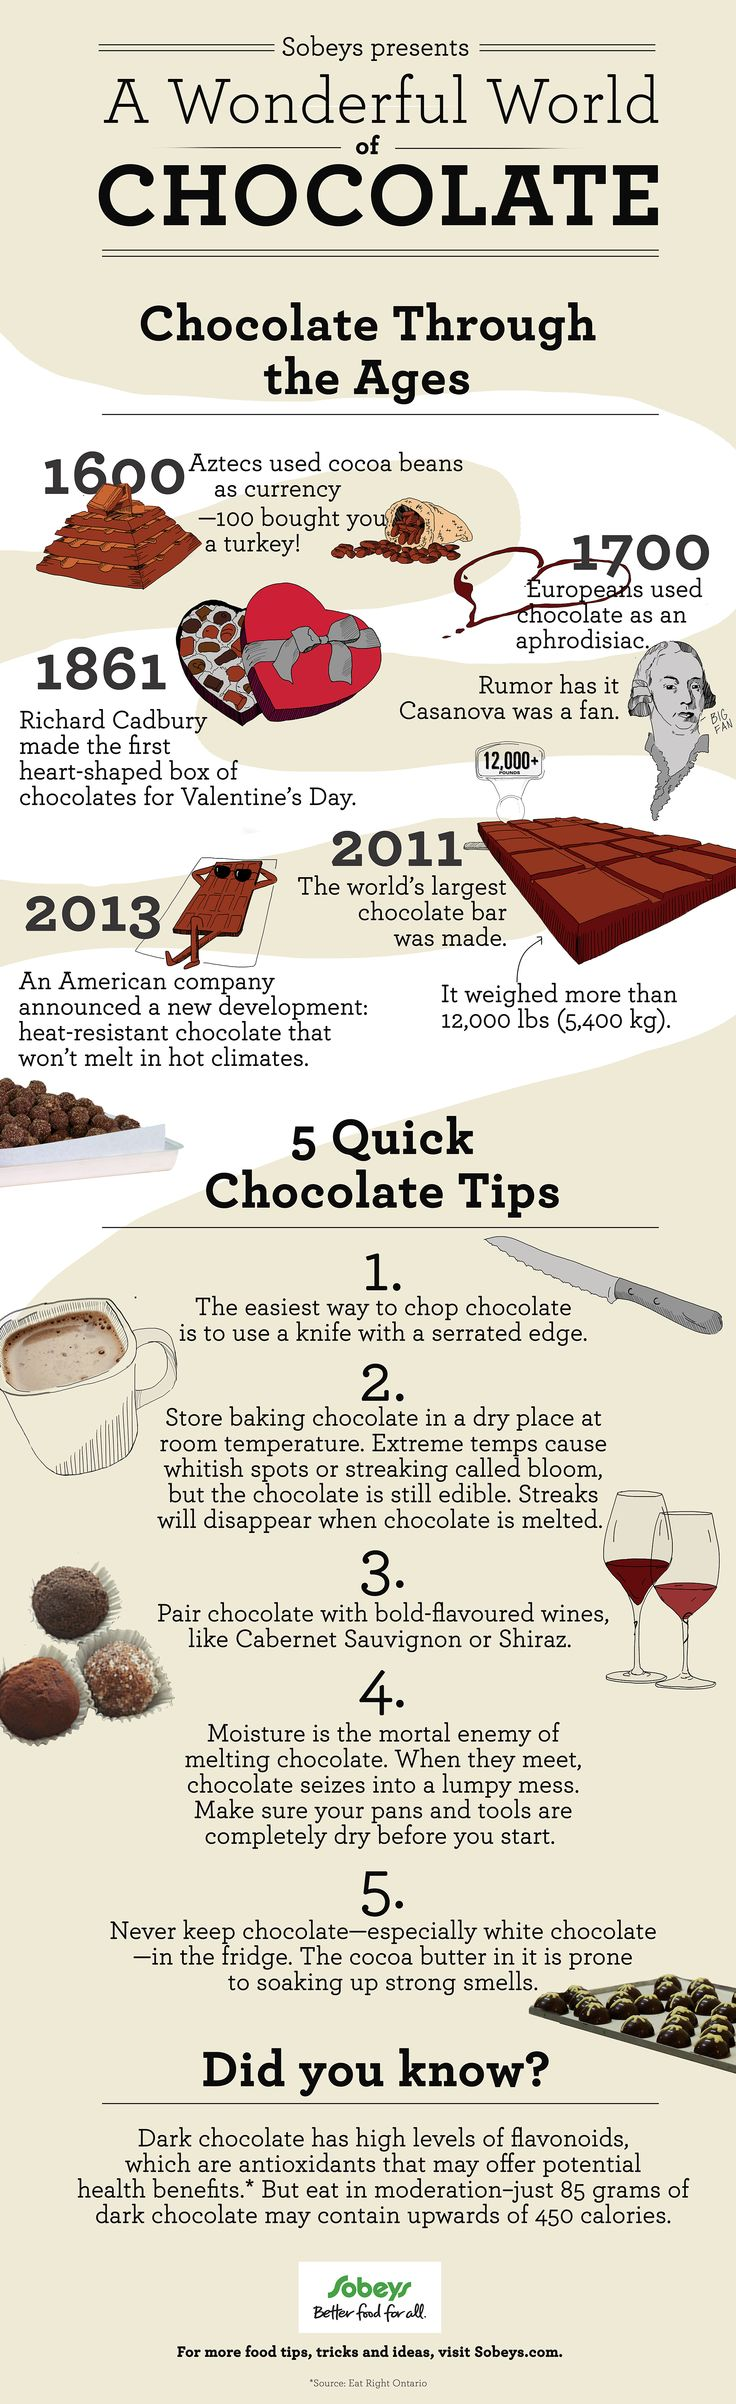 A Wonderful World of Chocolate